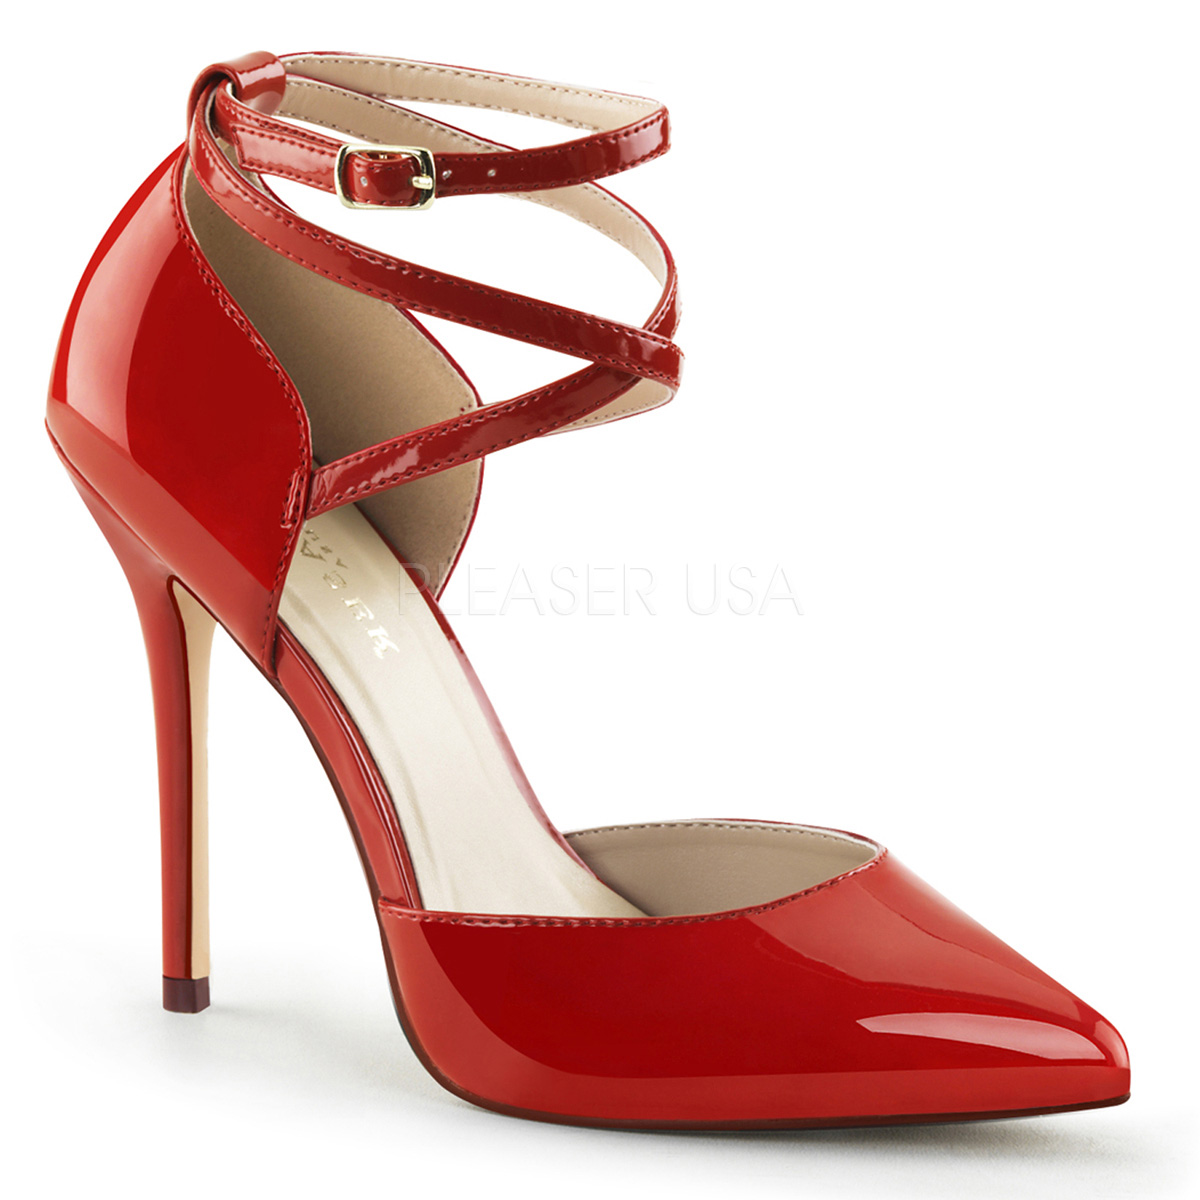 Fiore Shoes Uk